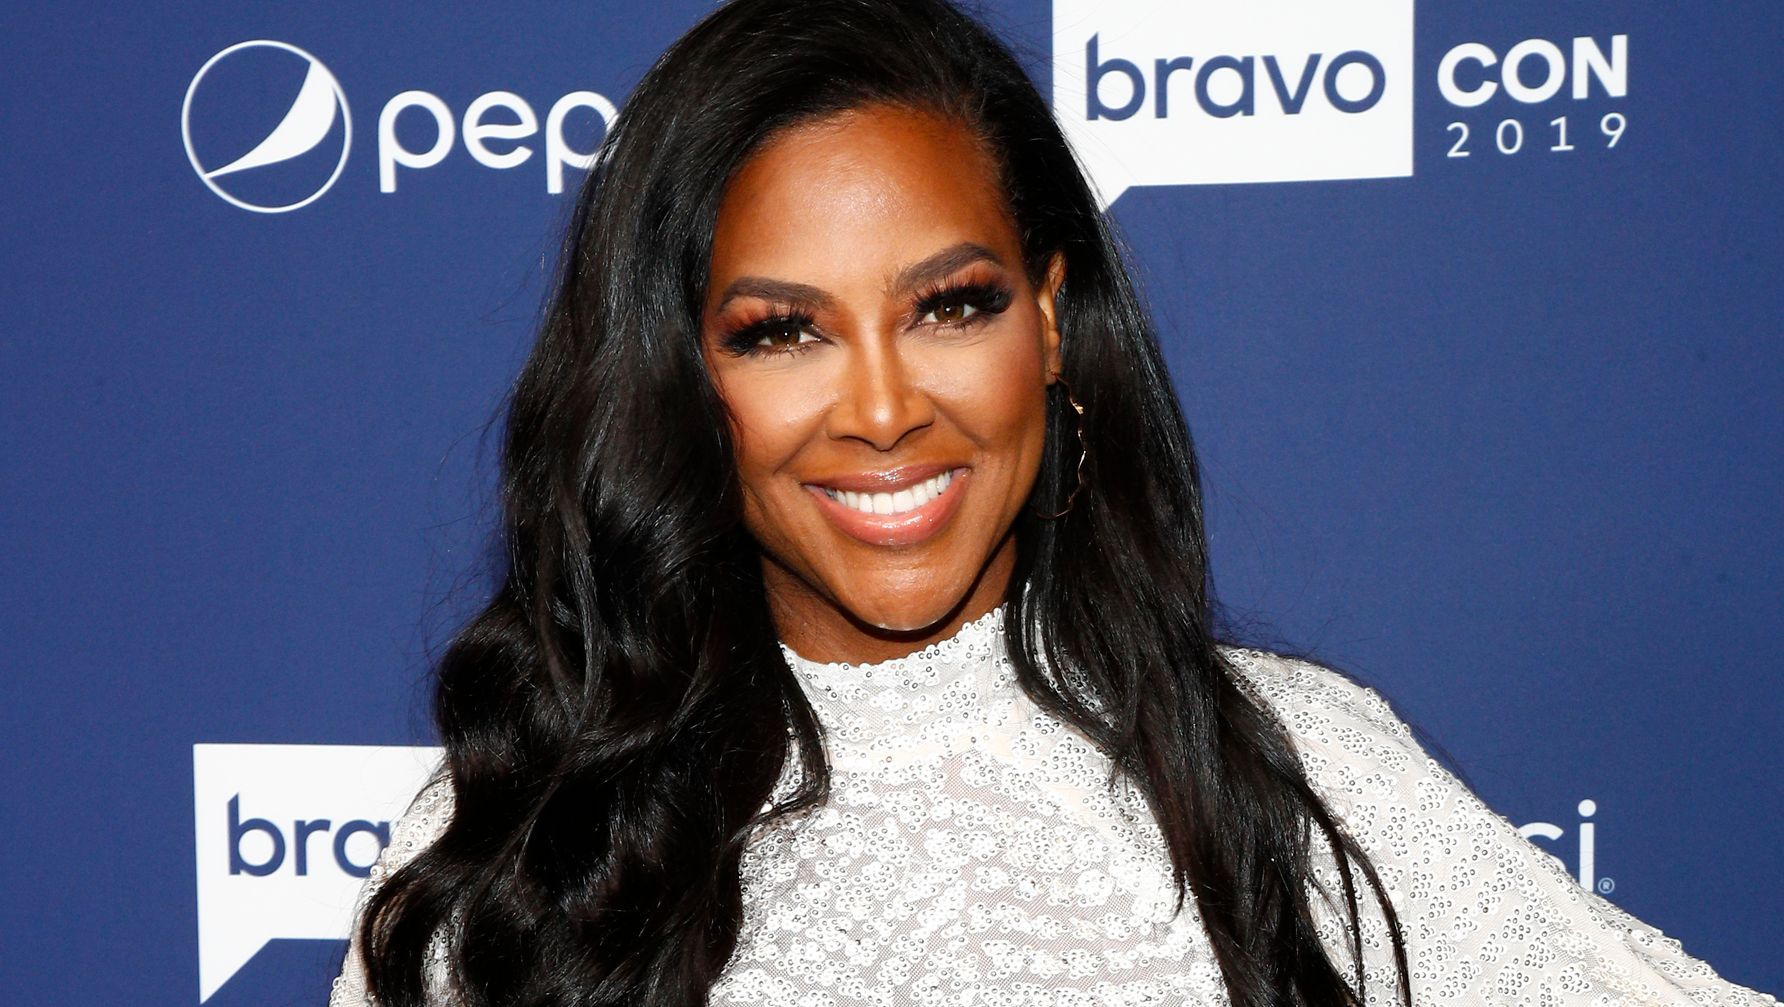 Kenya Moore's Baby Girl, Brooklyn Daly, Has A Great Time In Front Of The TV, Eating Popcorn And Fans Are In Awe